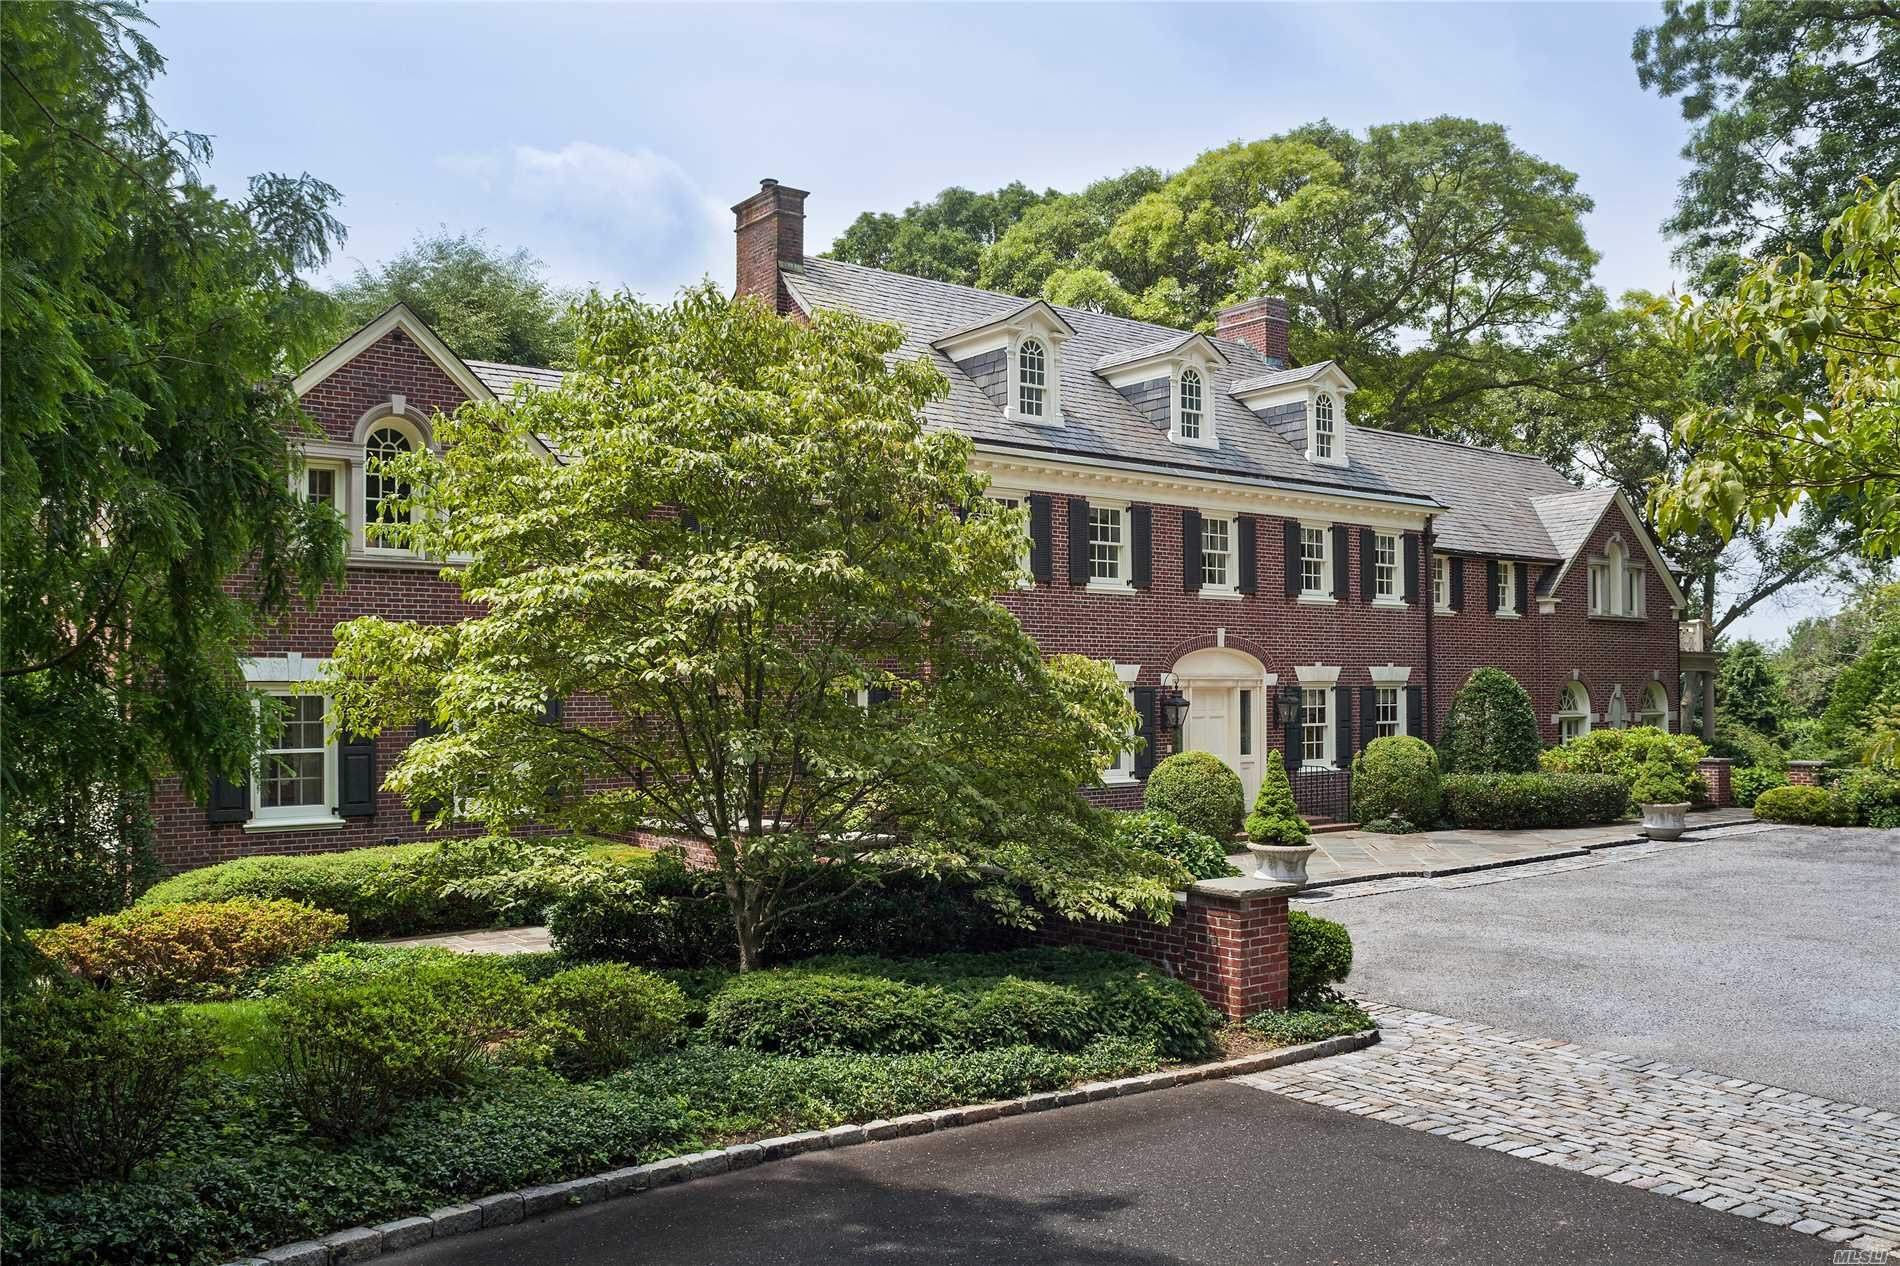 Impeccable Brick Estate Compound Rebuilt By Modern Classicist Architect Oliver Cope. The Property Includes A 1932 Center Hall Colonial, A 3 Bedroom Palladian-Style Pool House Designed By Renown Architectural Firm George Post, And A Garage With Lodge-Style Office Suite. Set On 7.66 Acres Of Land With Specimen Plantings.